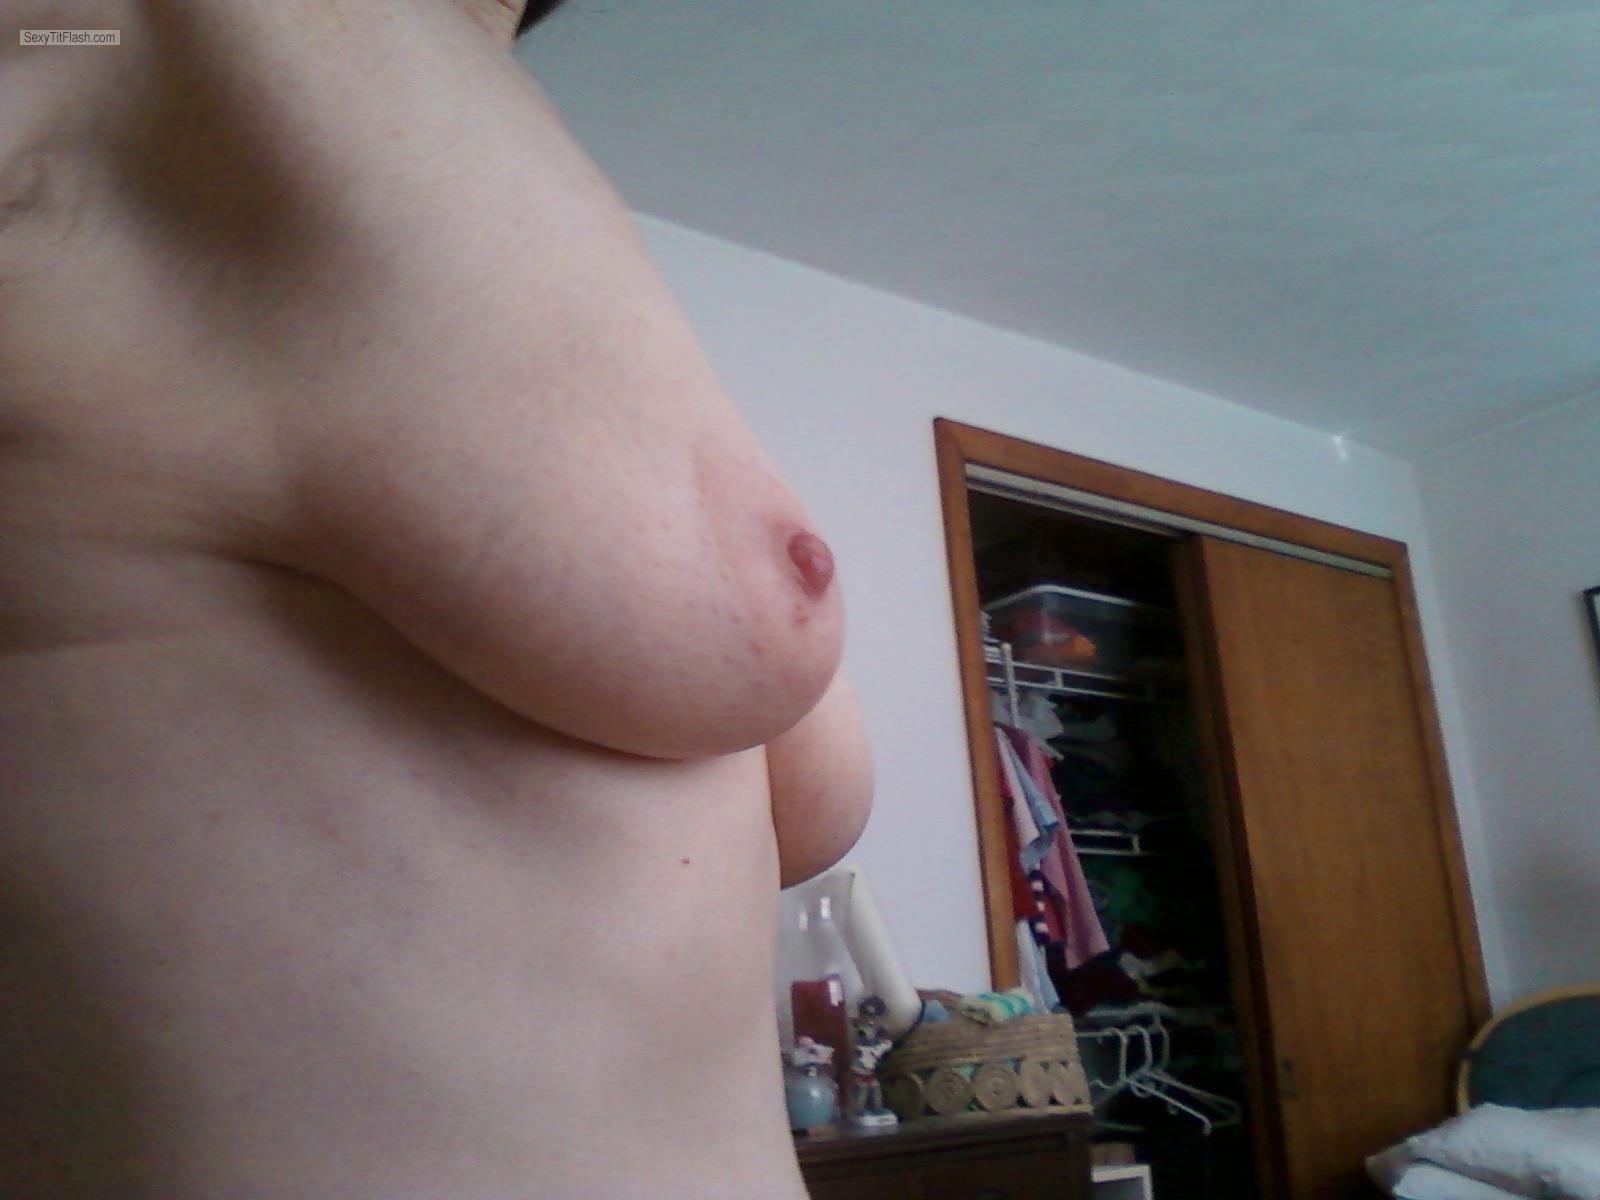 Tit Flash: My Coworker's Small Tits (Selfie) - Weatherwitch from United States